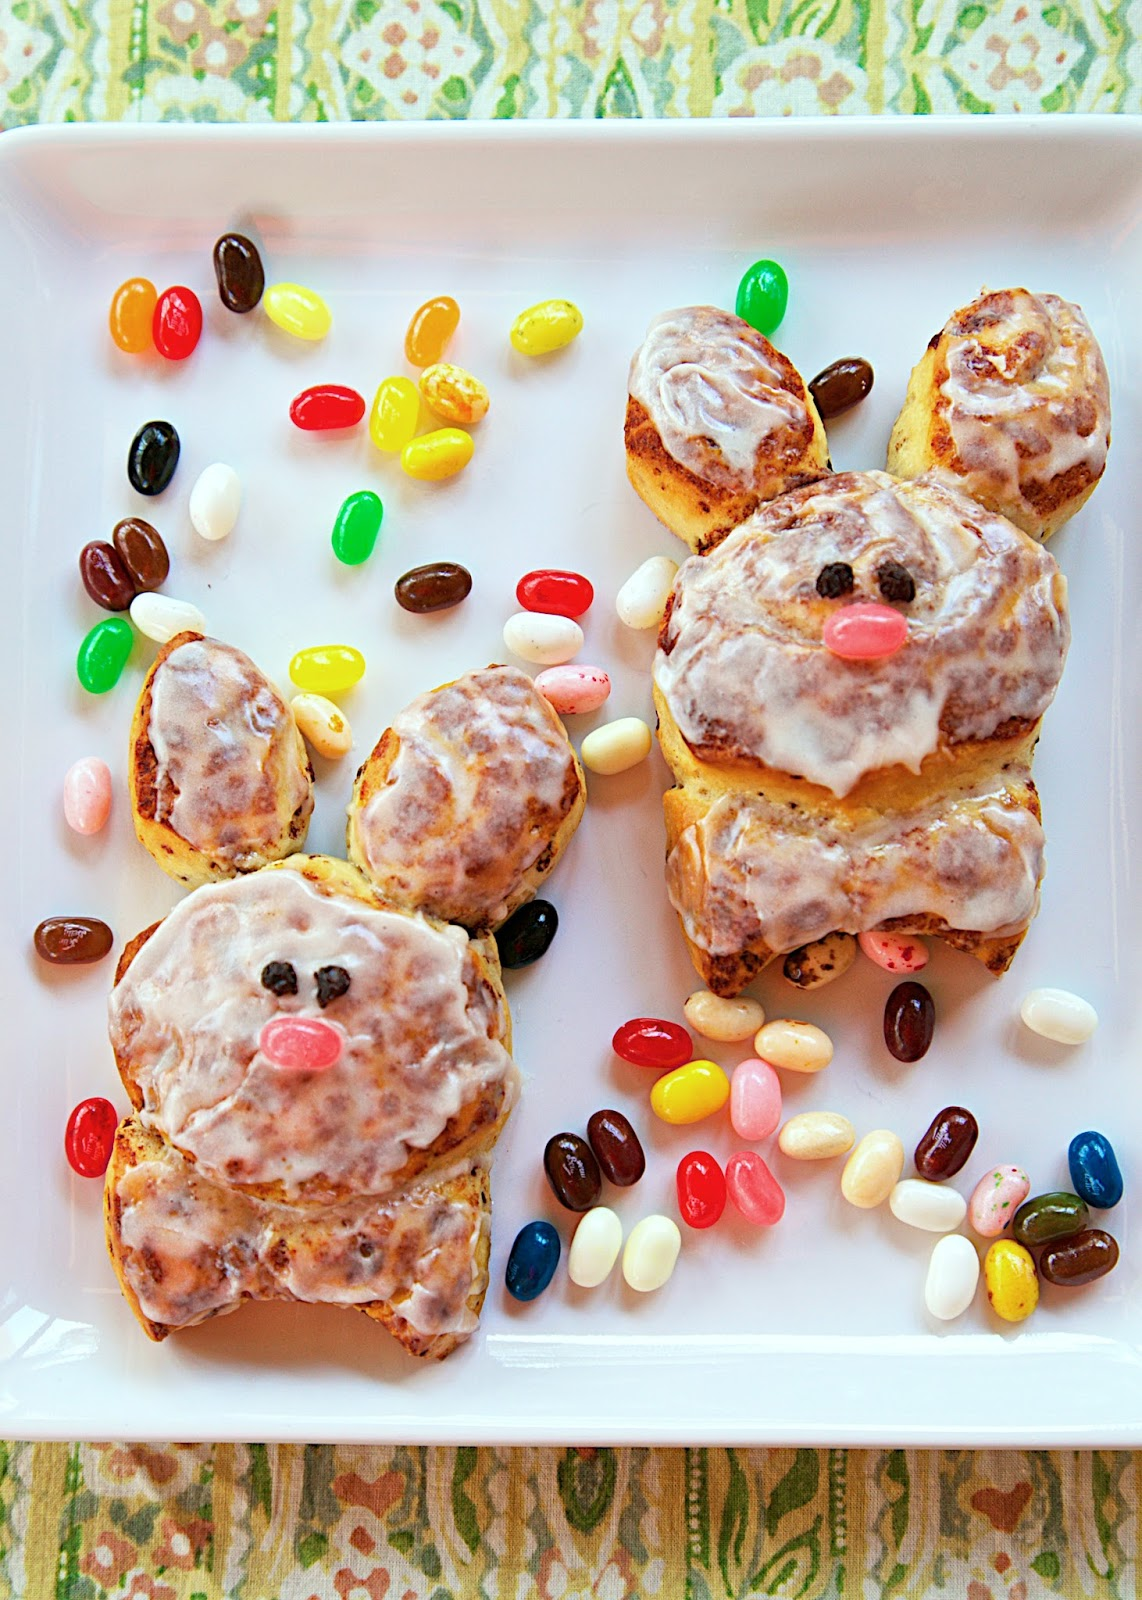 Cinnabunnies Recipe - refrigerated cinnamon rolls cut out in the shape of an Easter bunny. The perfect Easter morning treat!